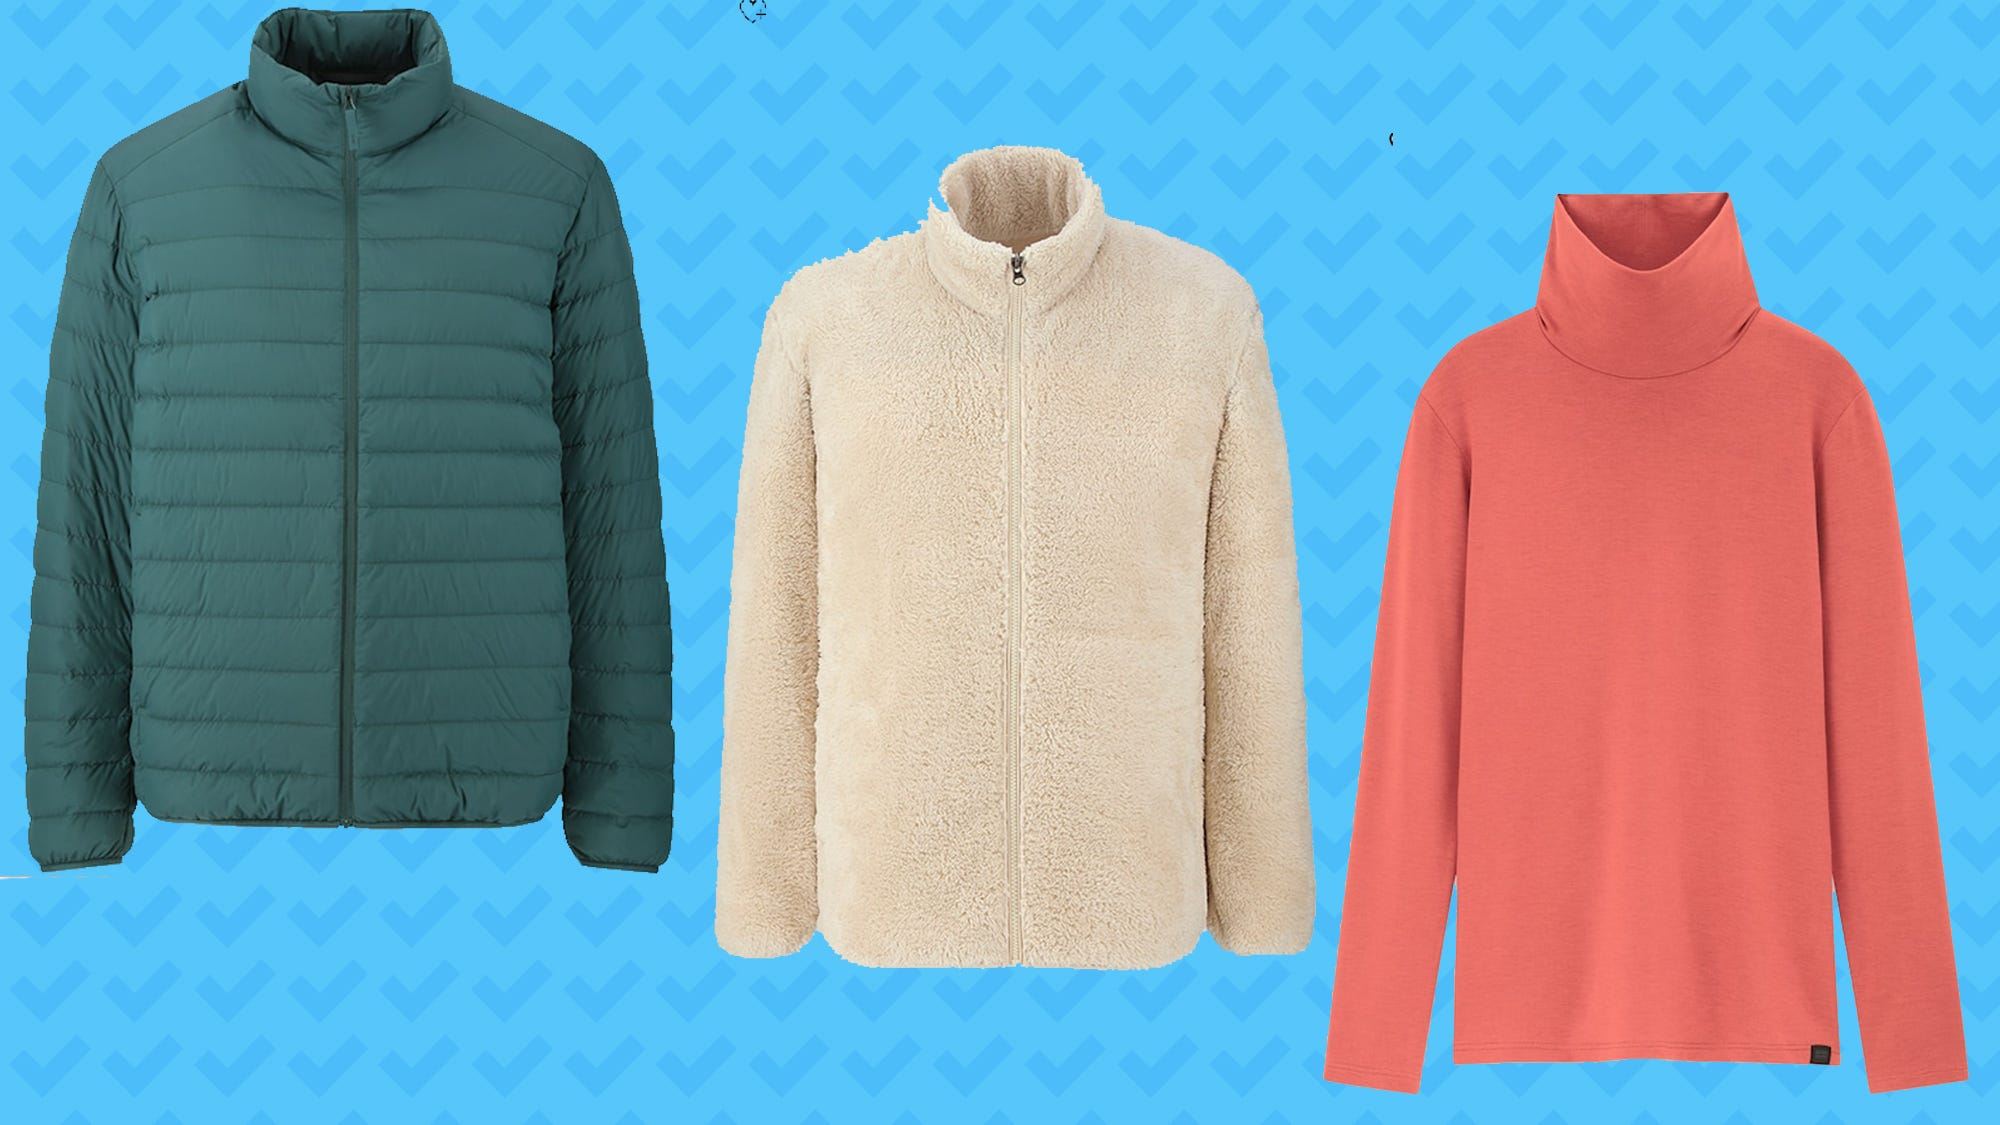 Cyber Monday 2020: The best Uniqlo deals